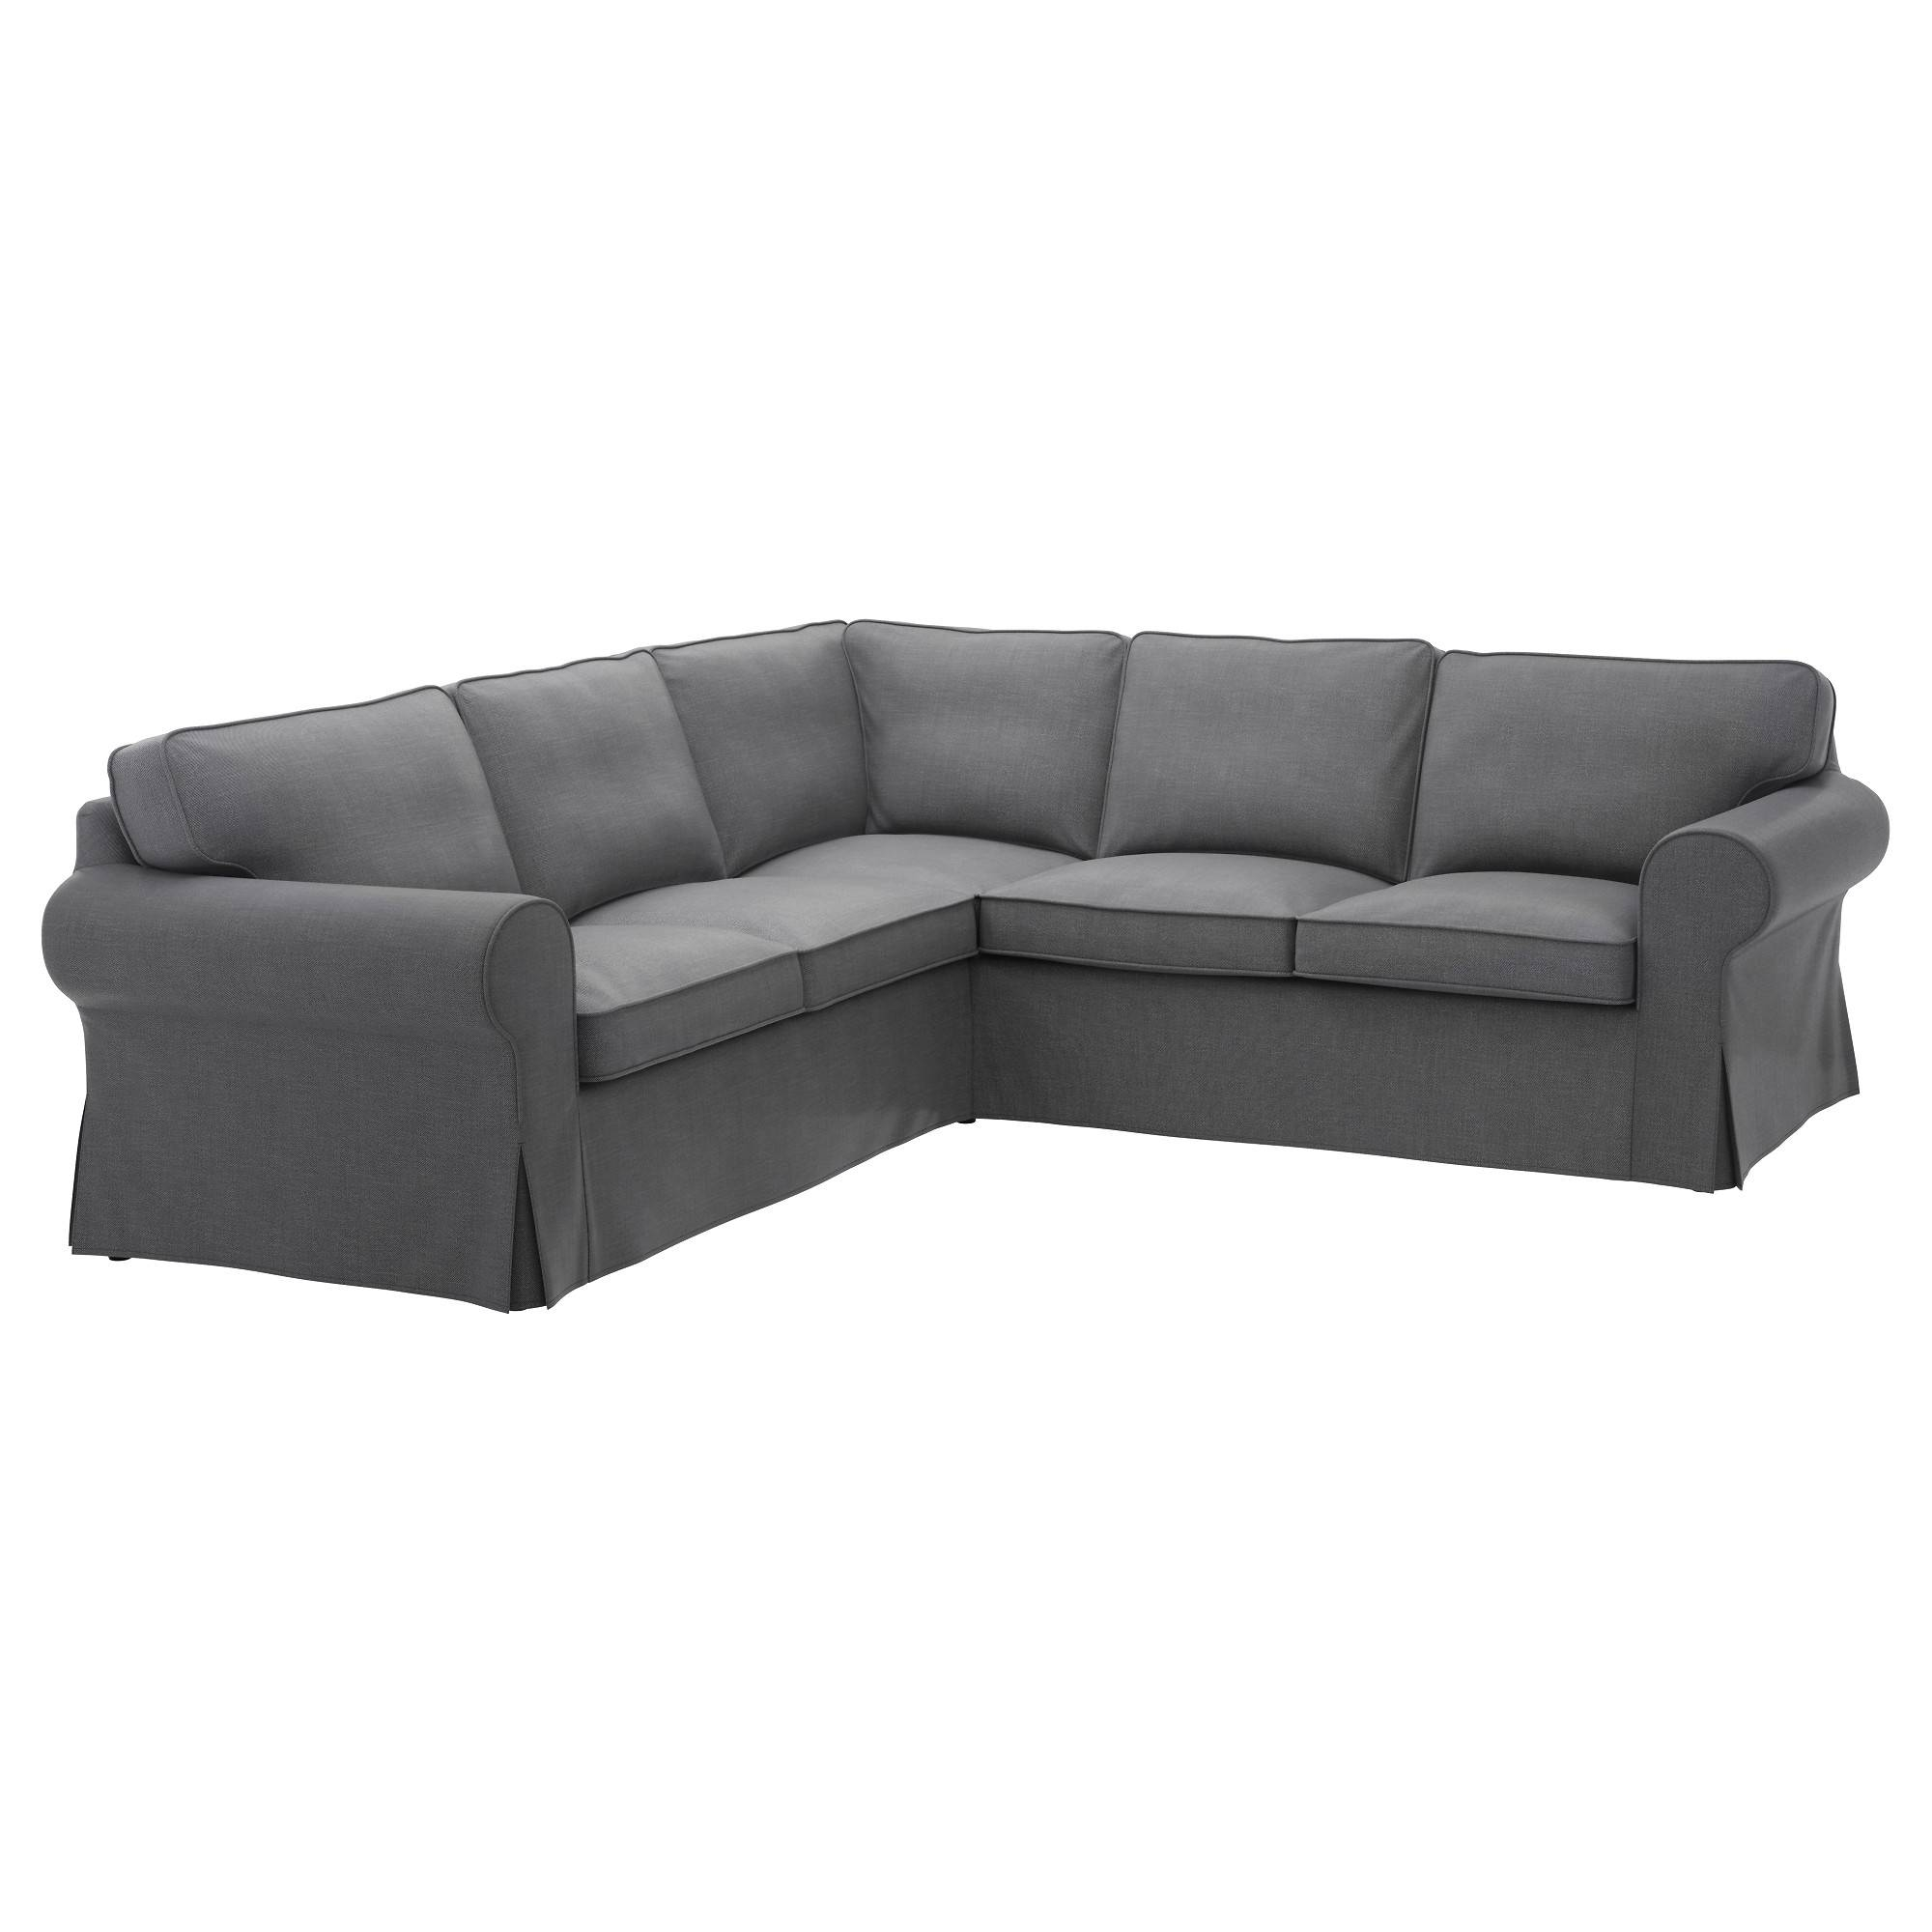 Ektorp Sectional, 4-Seat Corner - Lofallet Beige - Ikea throughout 4 Seat Couch (Image 11 of 30)